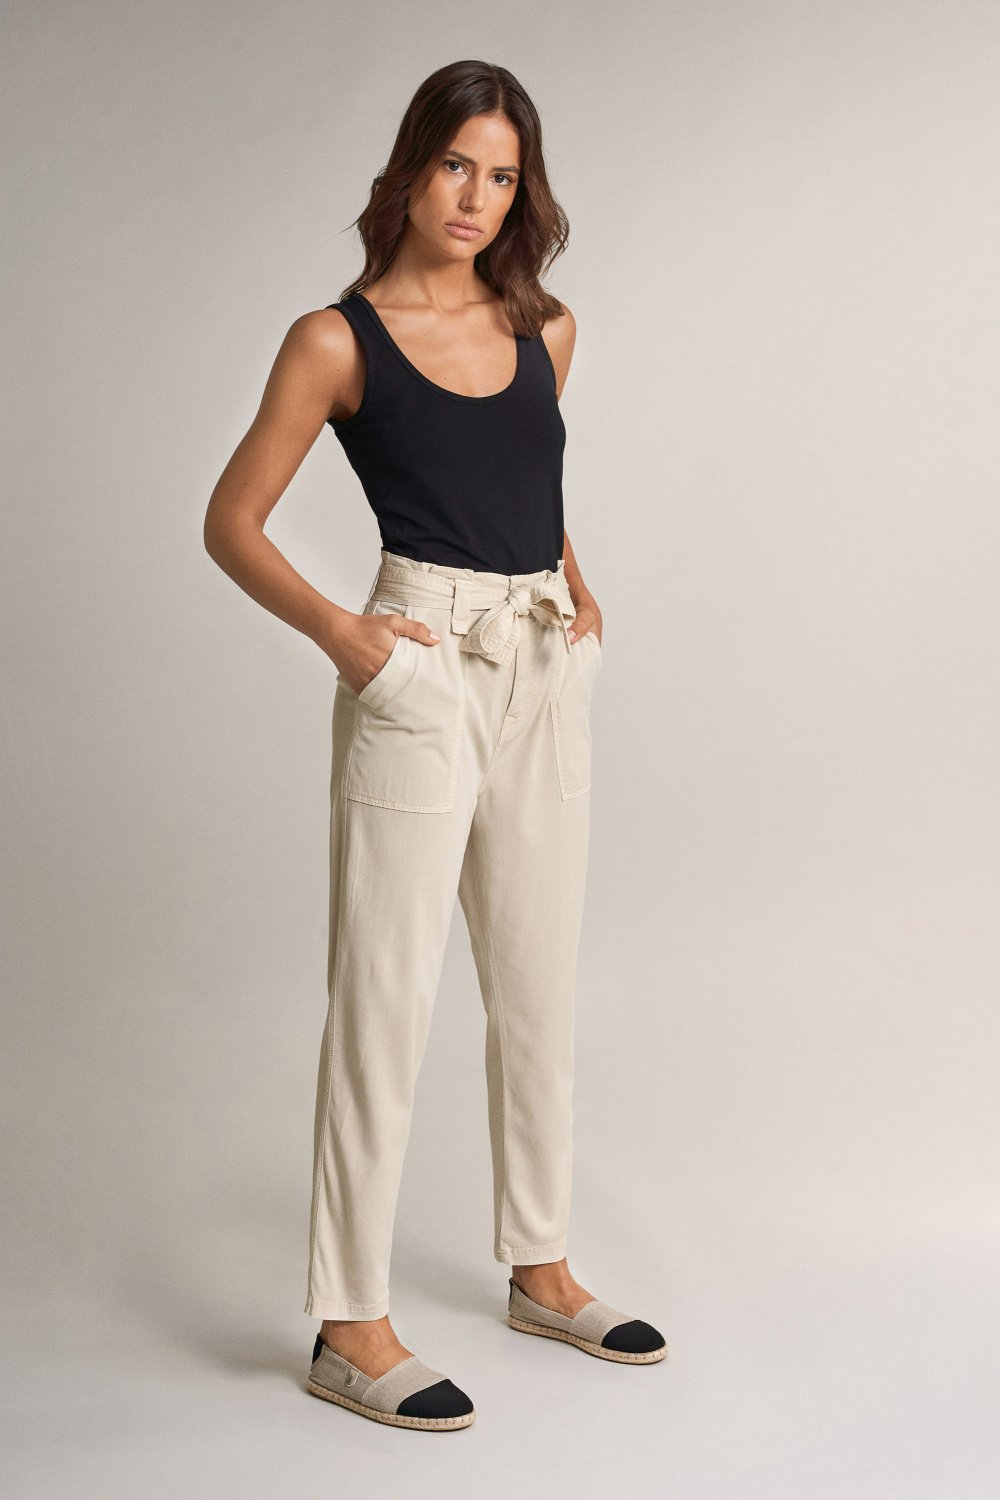 Boyfriend paper bag trousers with belt - Salsa